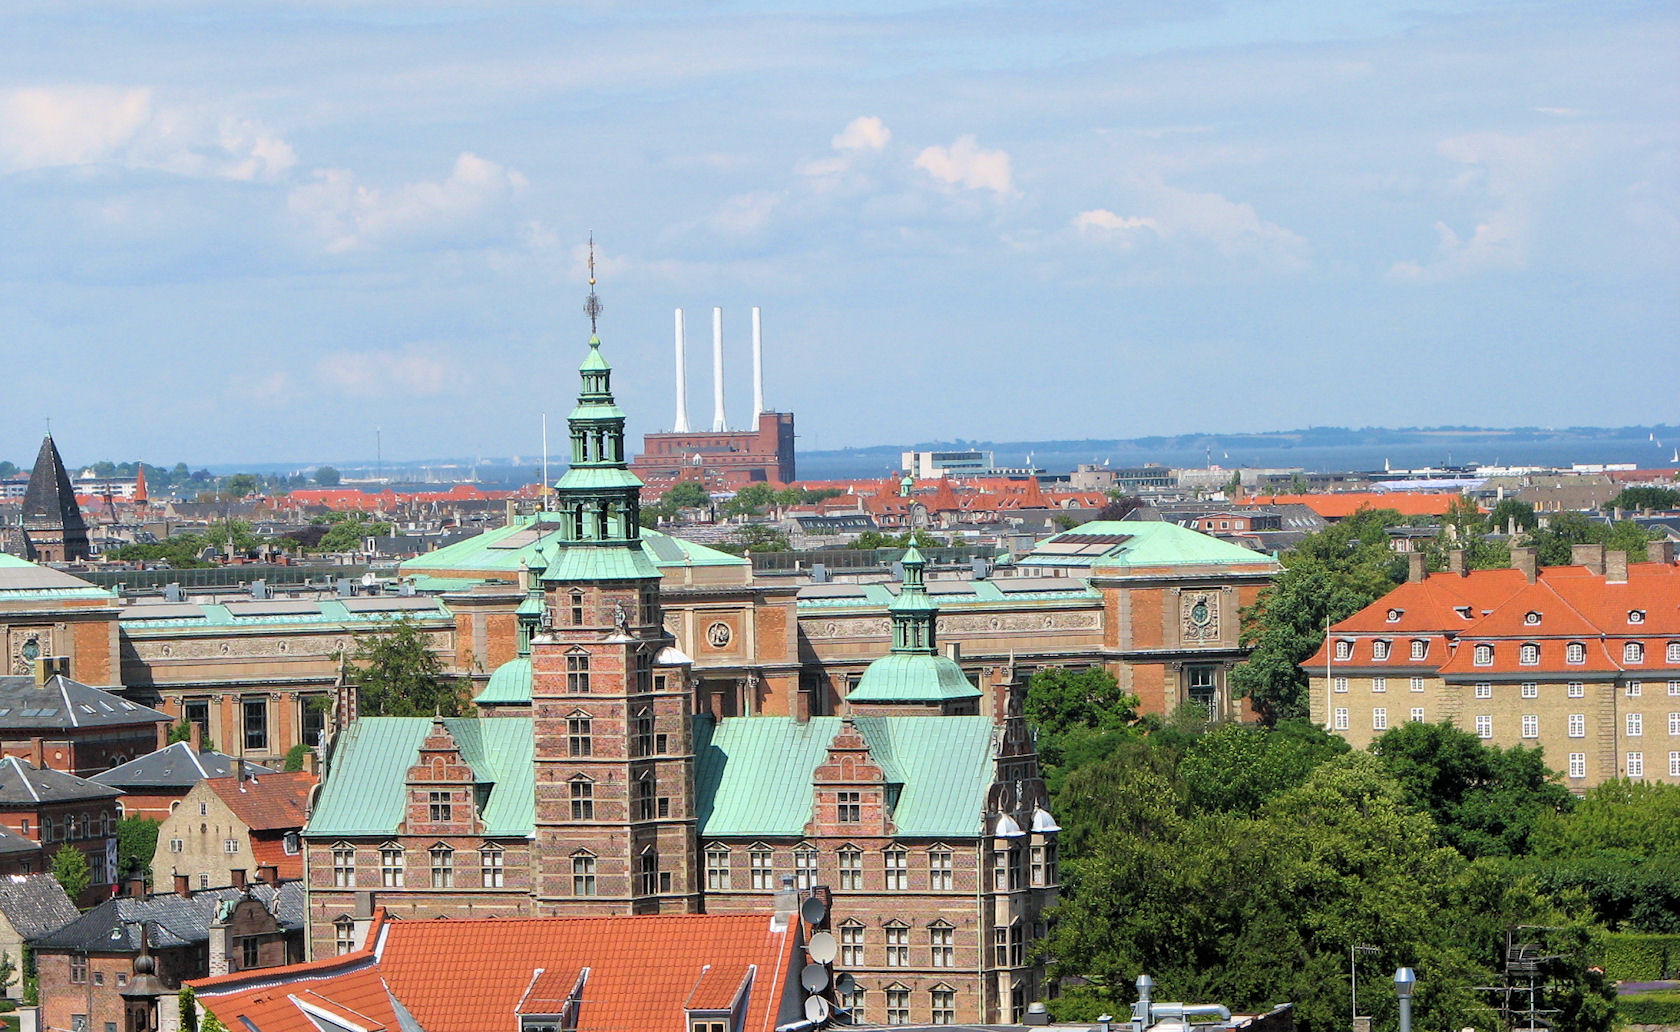 Copenhagen Denmark from the Round Tower